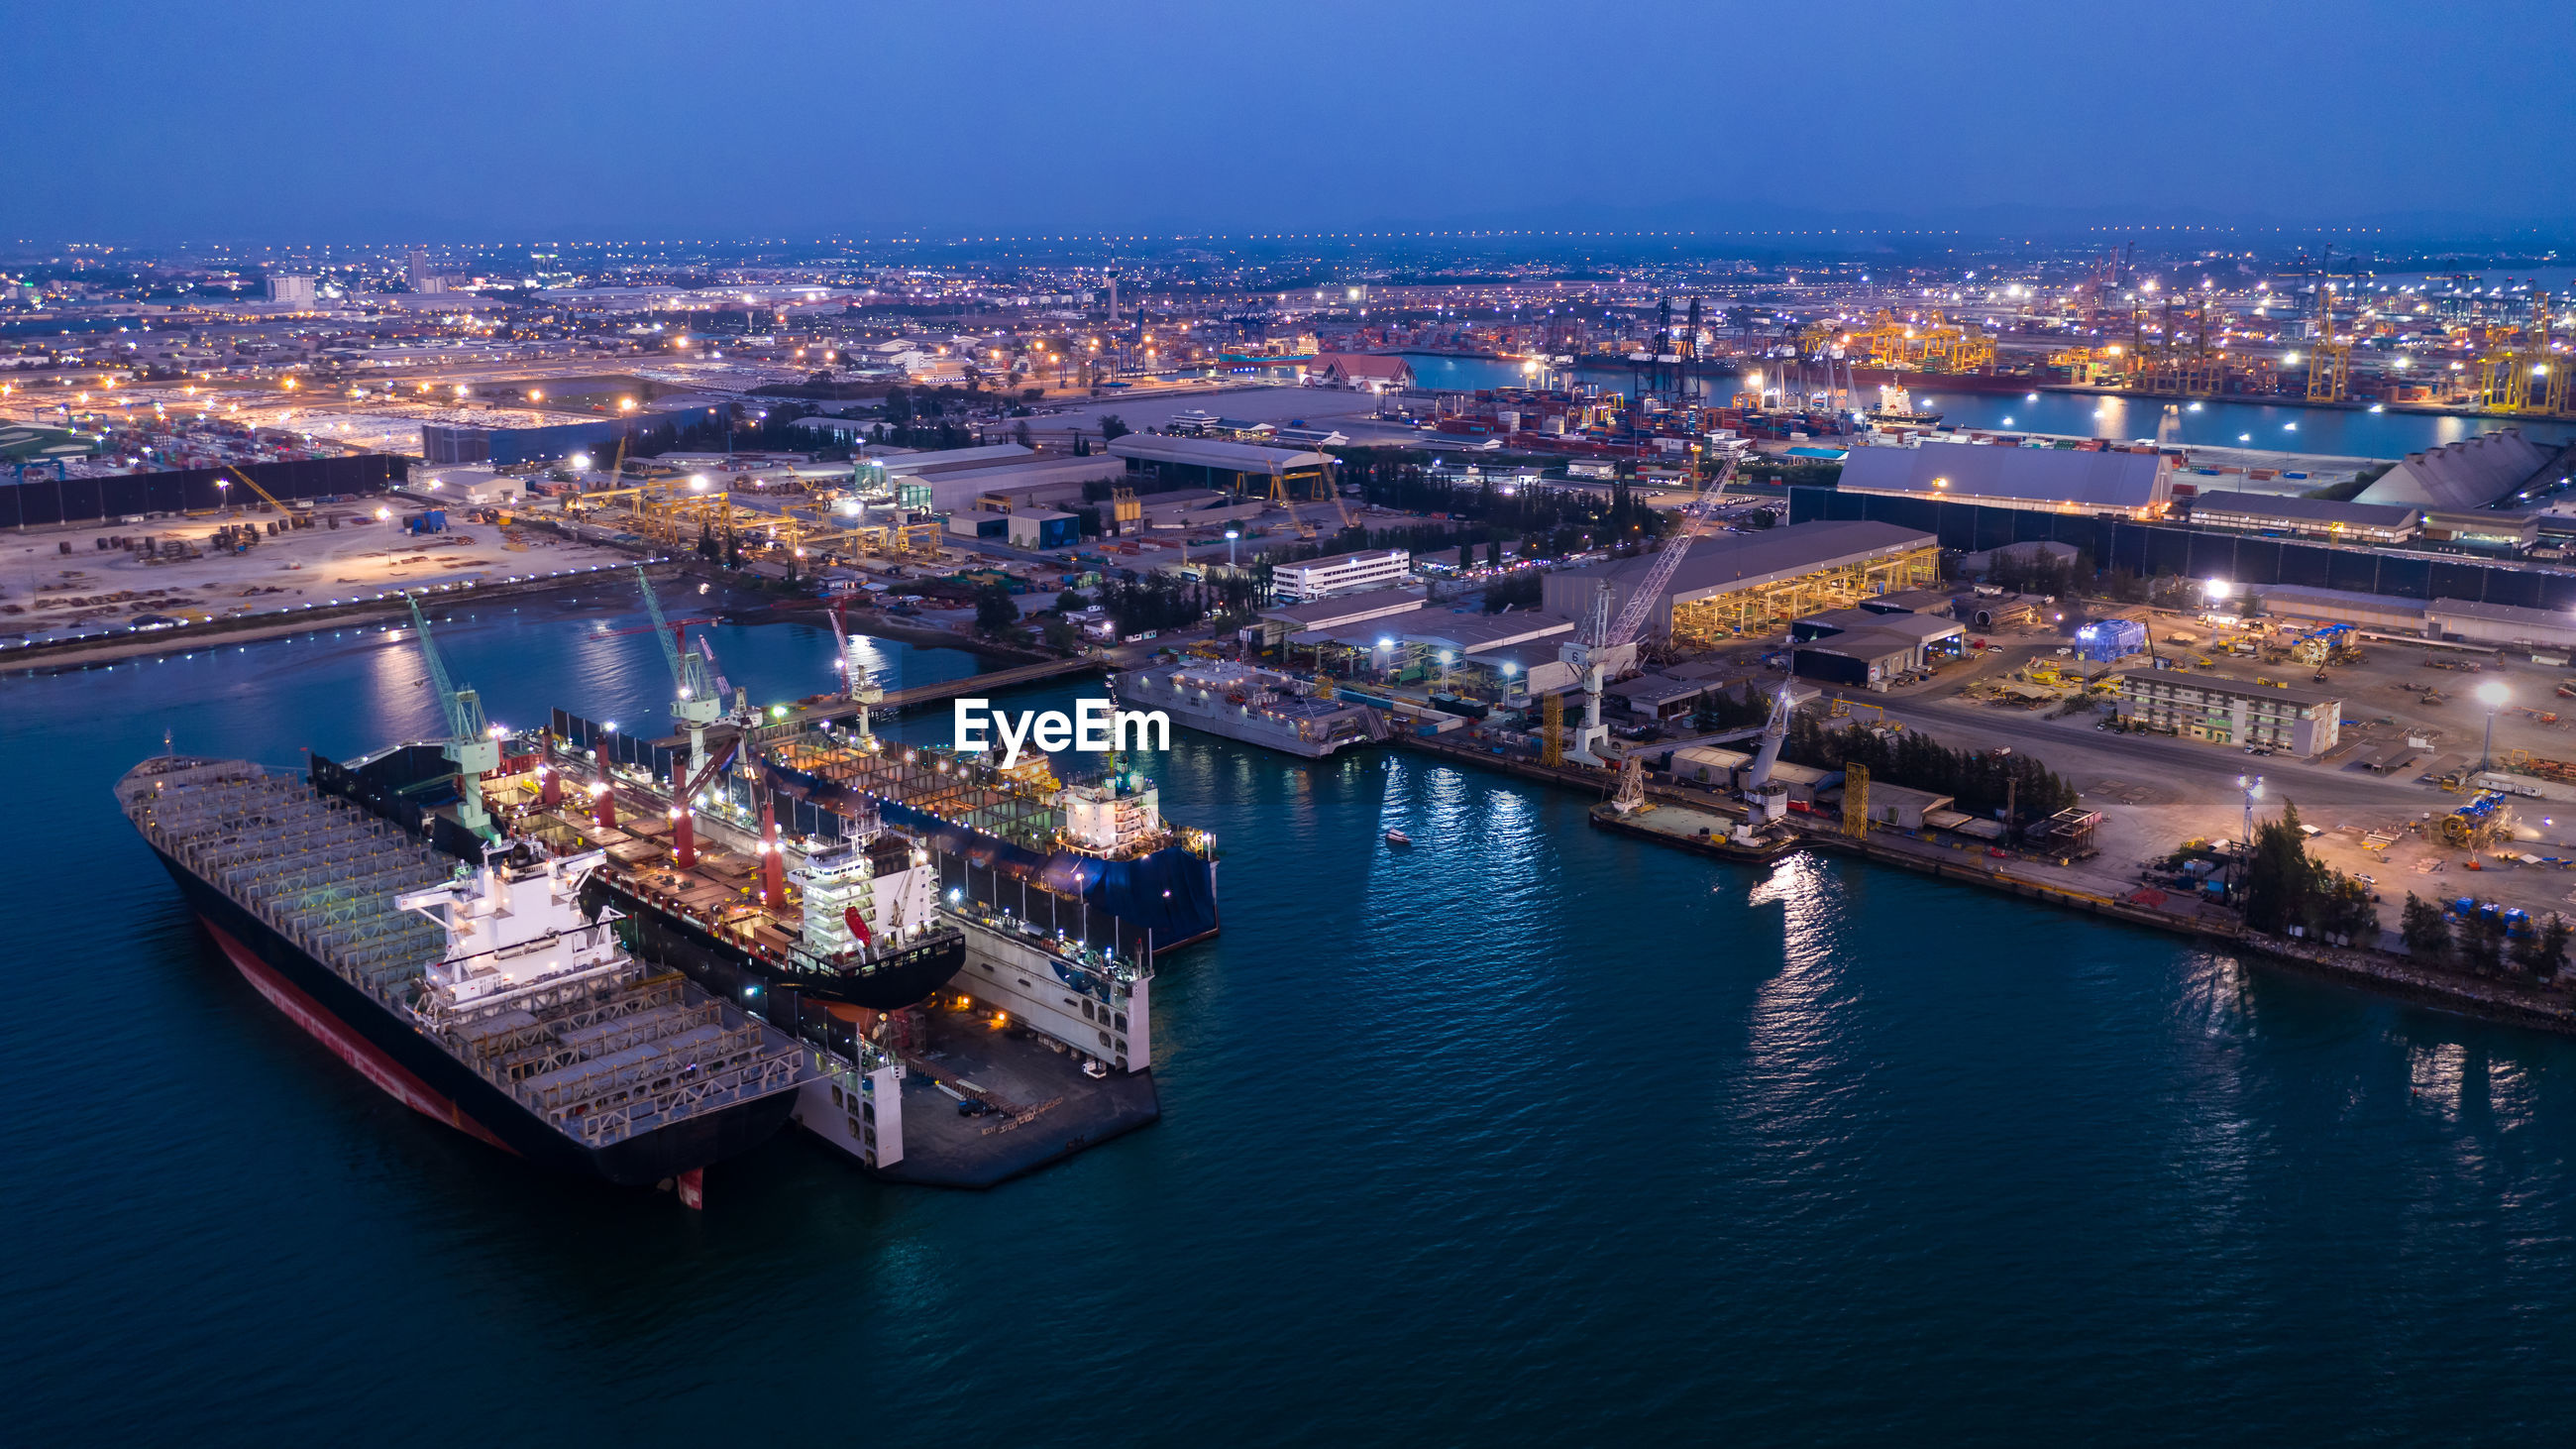 Large shipyard and maintenance on the sea at night laem chabang thailand aerial view